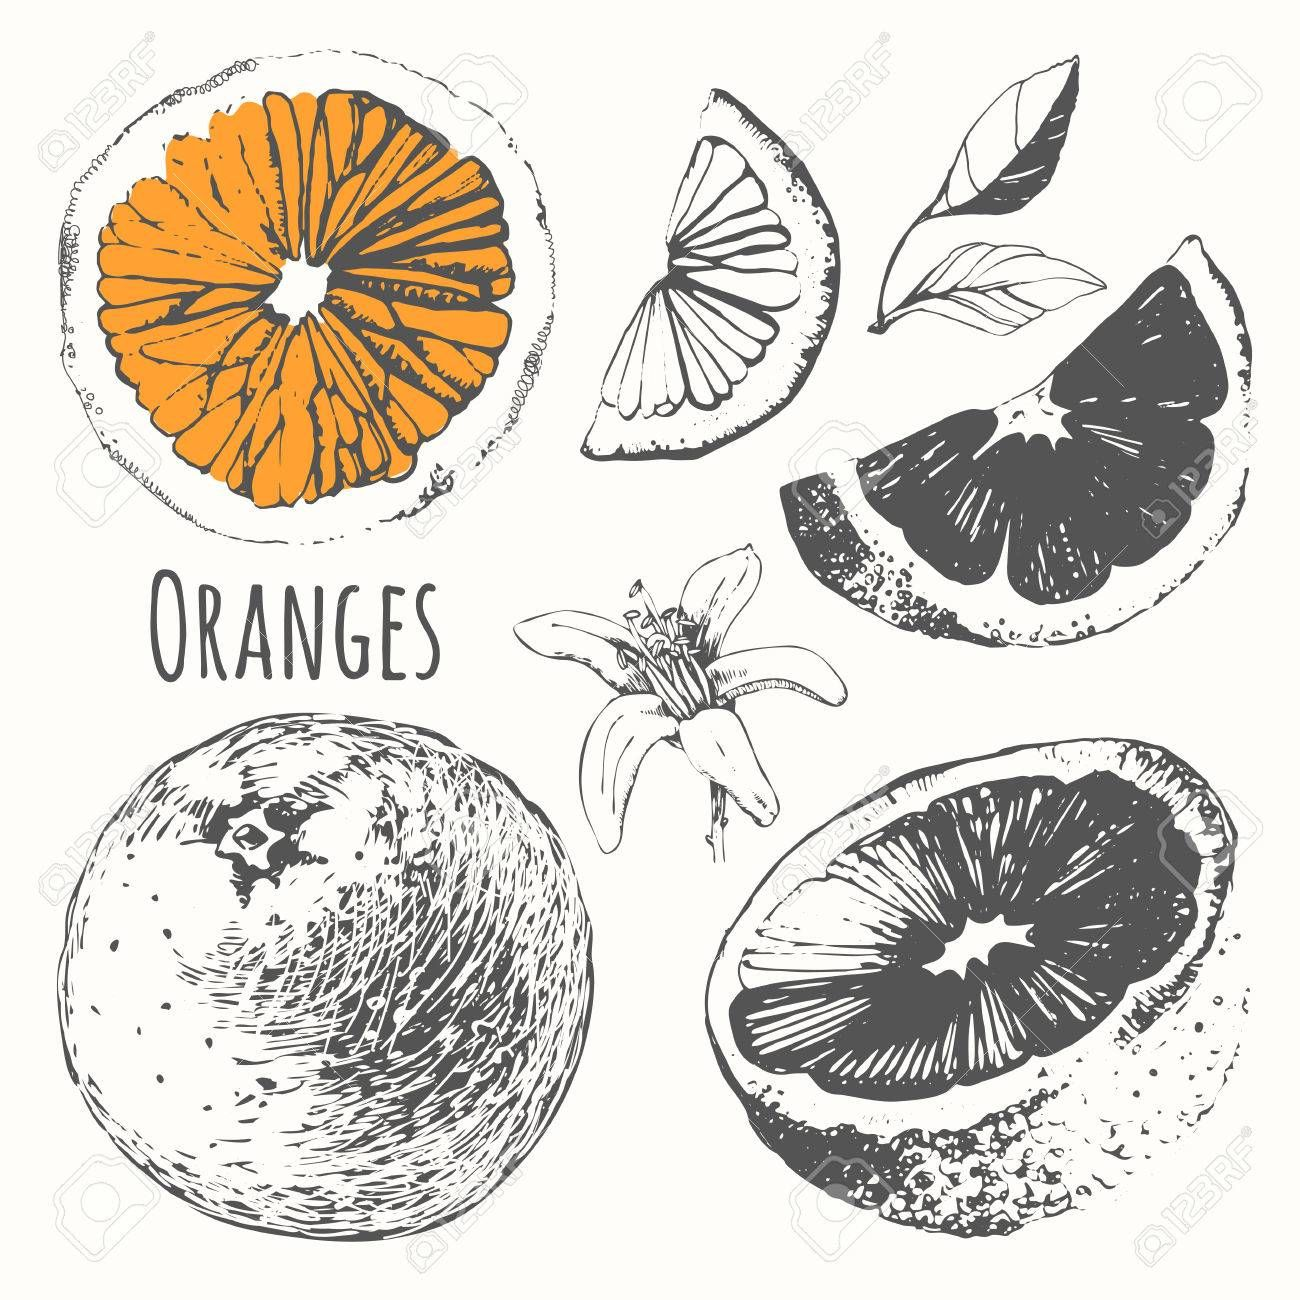 Vector Illustration With Hand Drawn Of Orange Black And White Cute Doodle Art Drawings Art Reference Photos